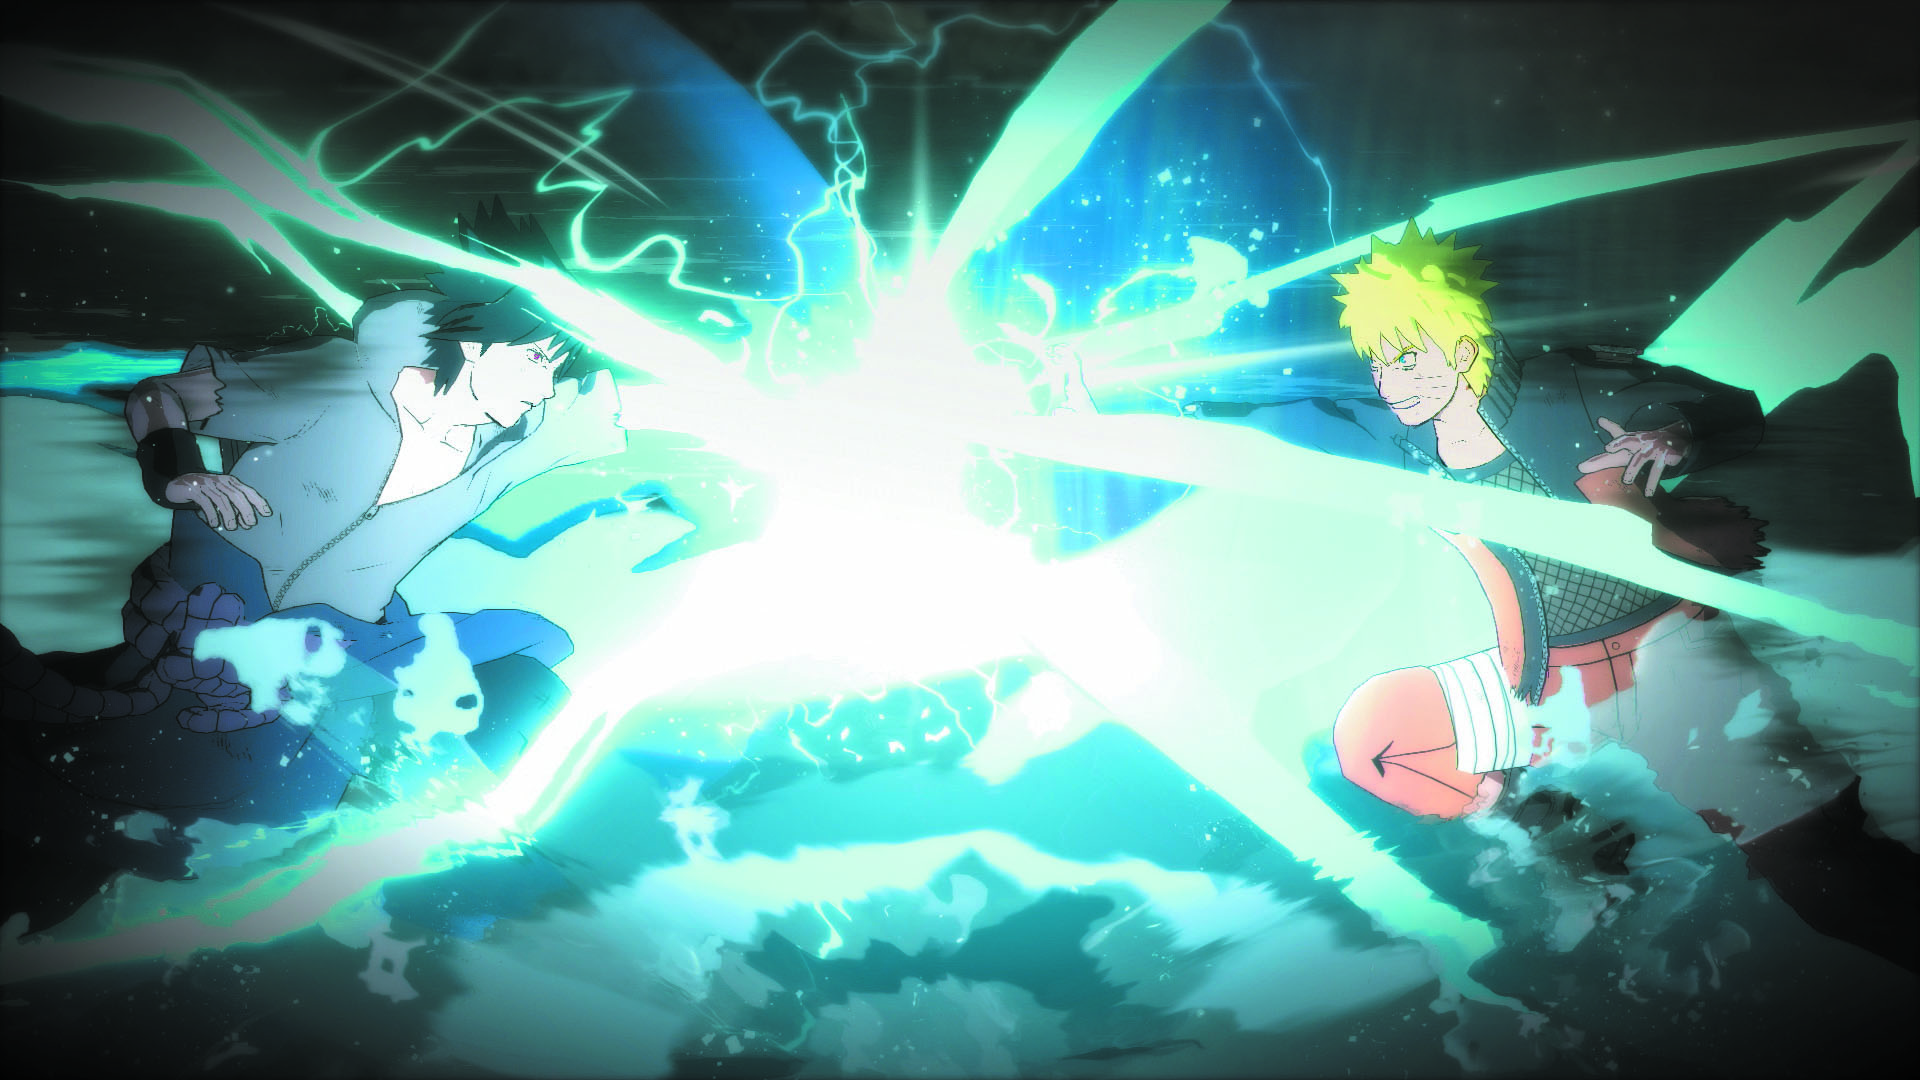 122 Naruto Shippuden: Ultimate Ninja Storm 4 HD Wallpapers | Background  Images - Wallpaper Abyss - Page 4